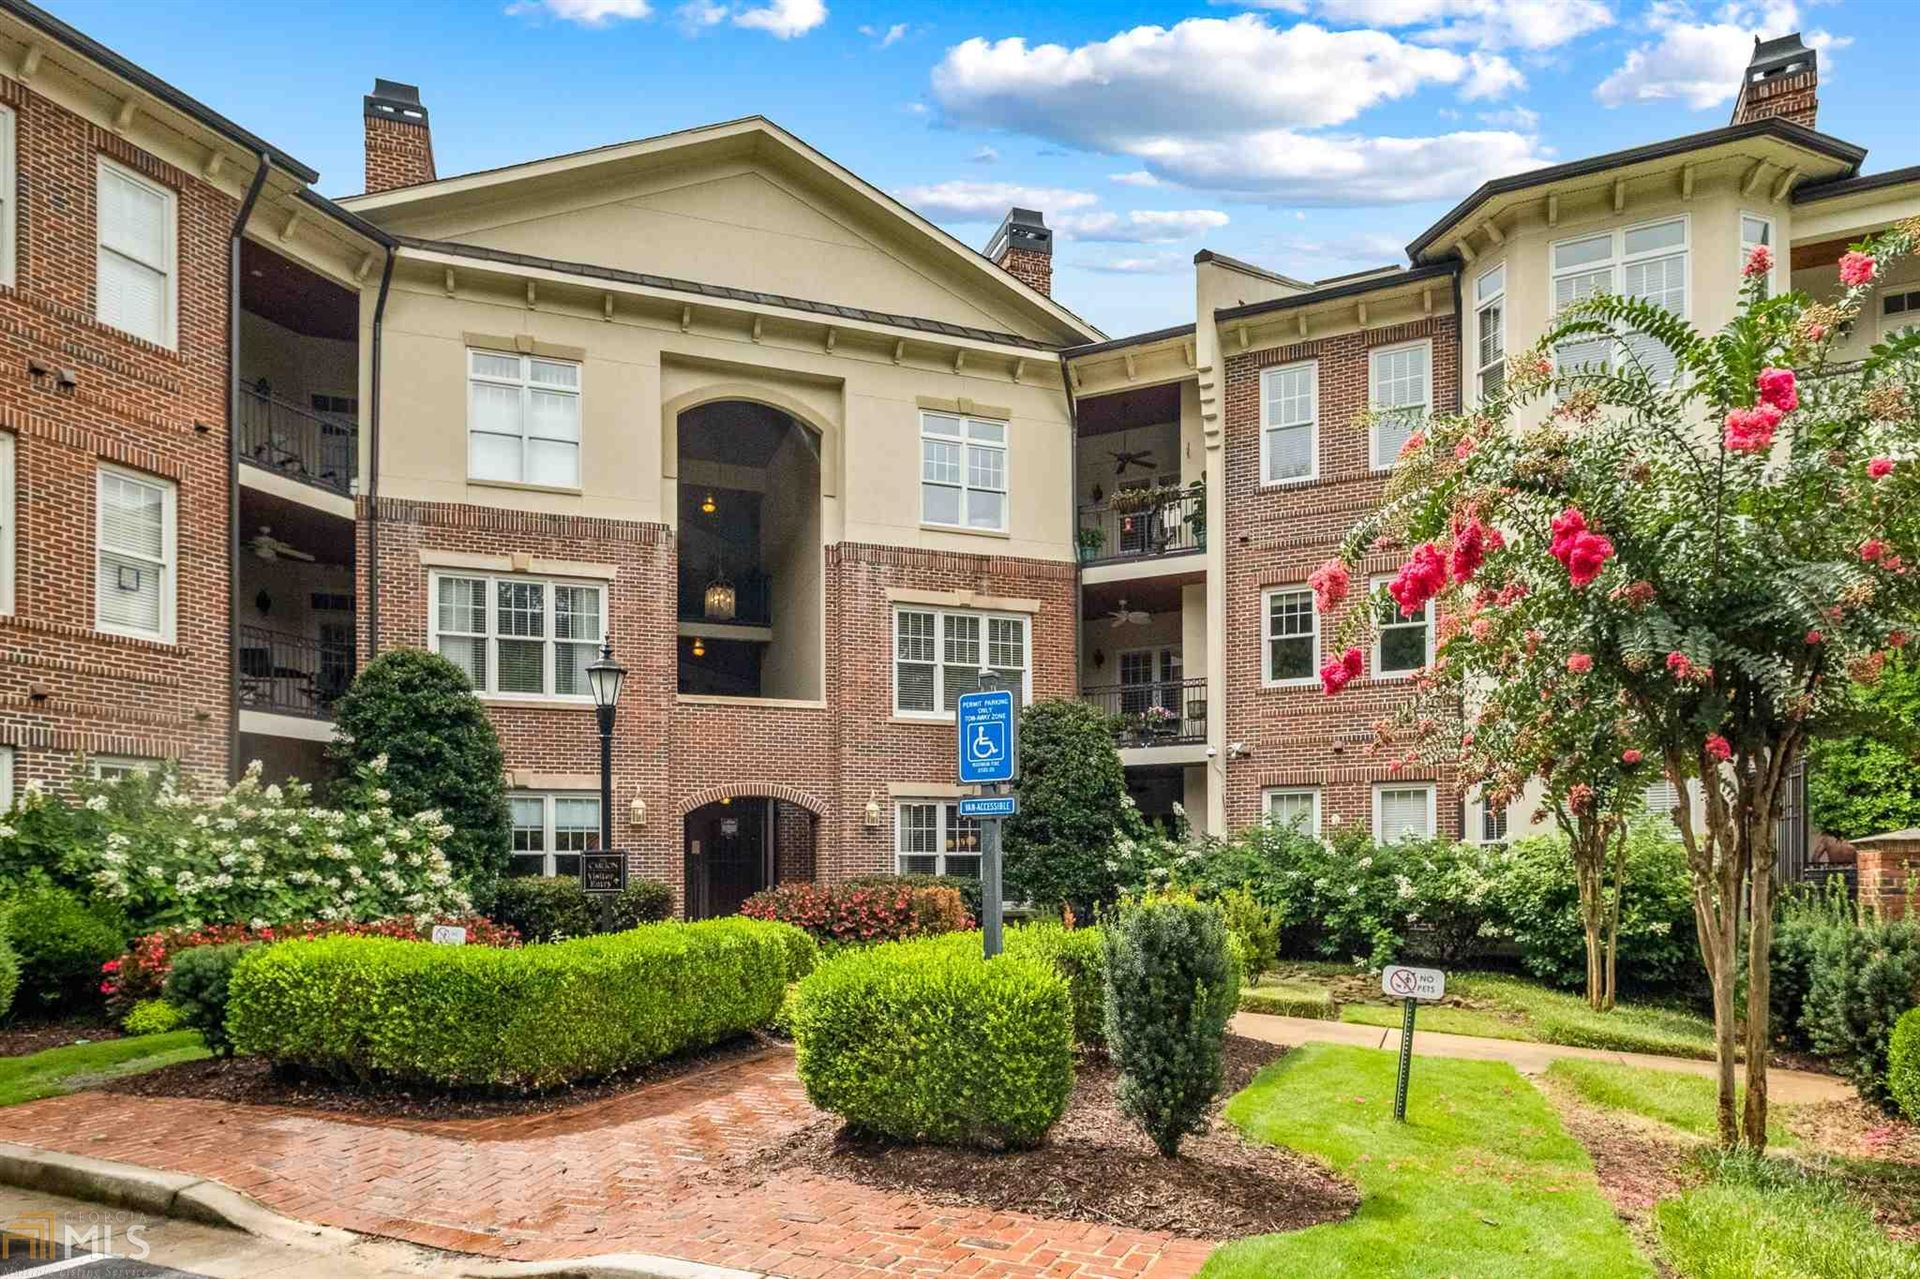 825 Highland Ln, Atlanta, GA 30306 - MLS#: 8830547